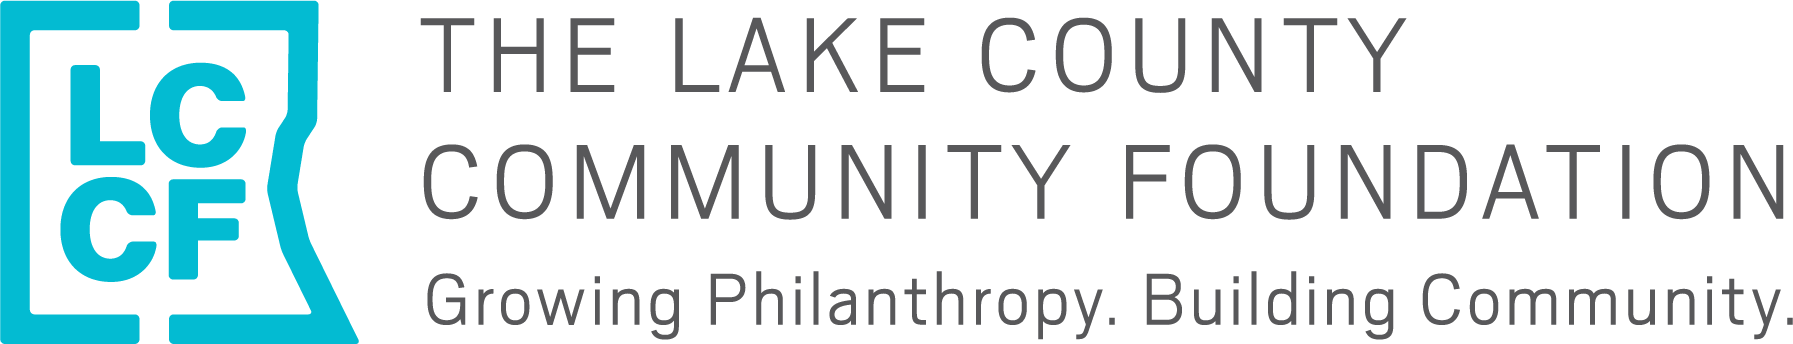 The Lake County Community Foundation Logo